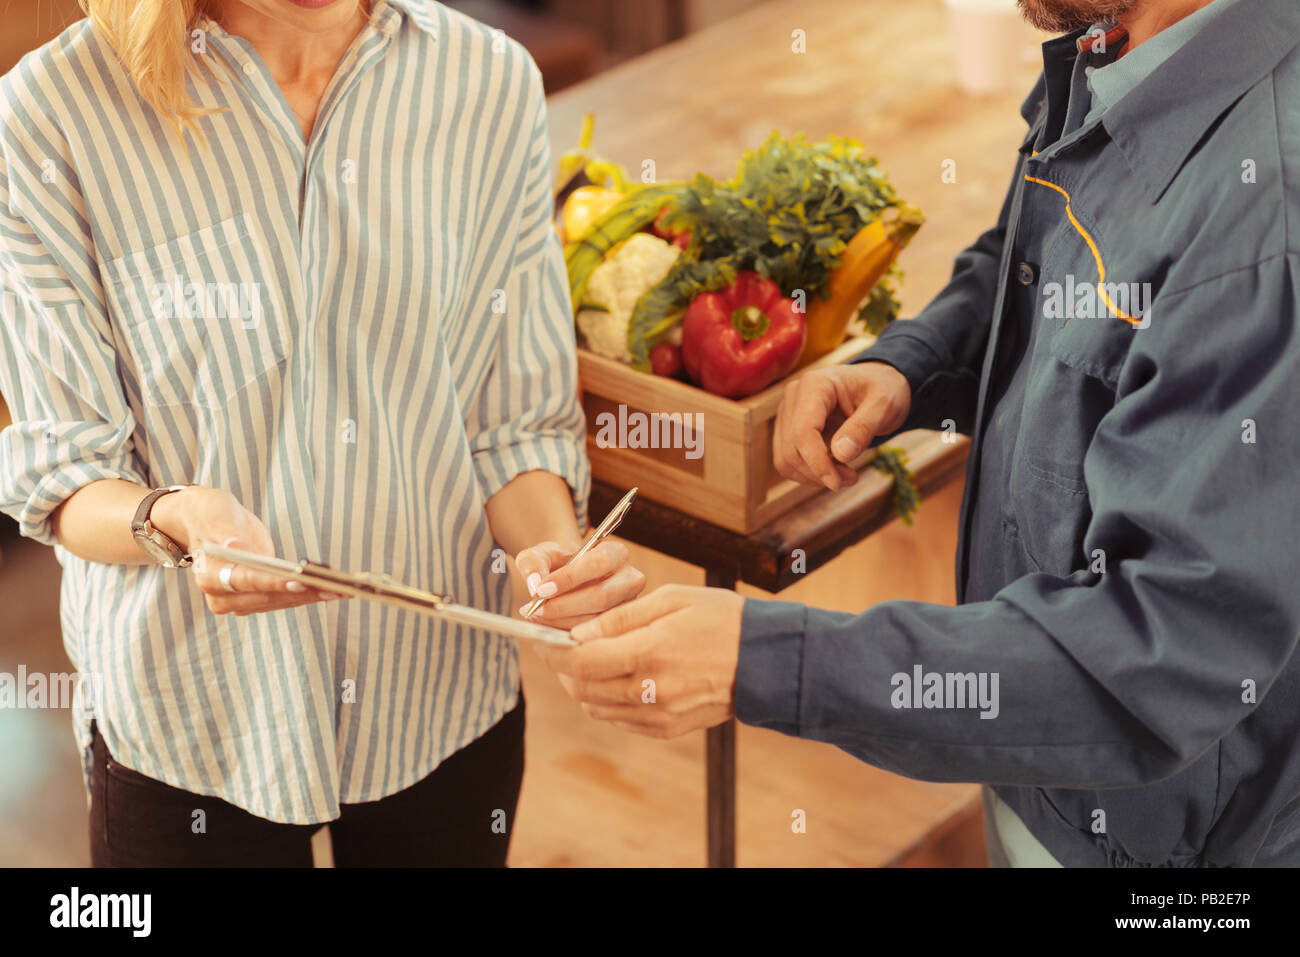 Top view photo of two people that holding folder - Stock Image